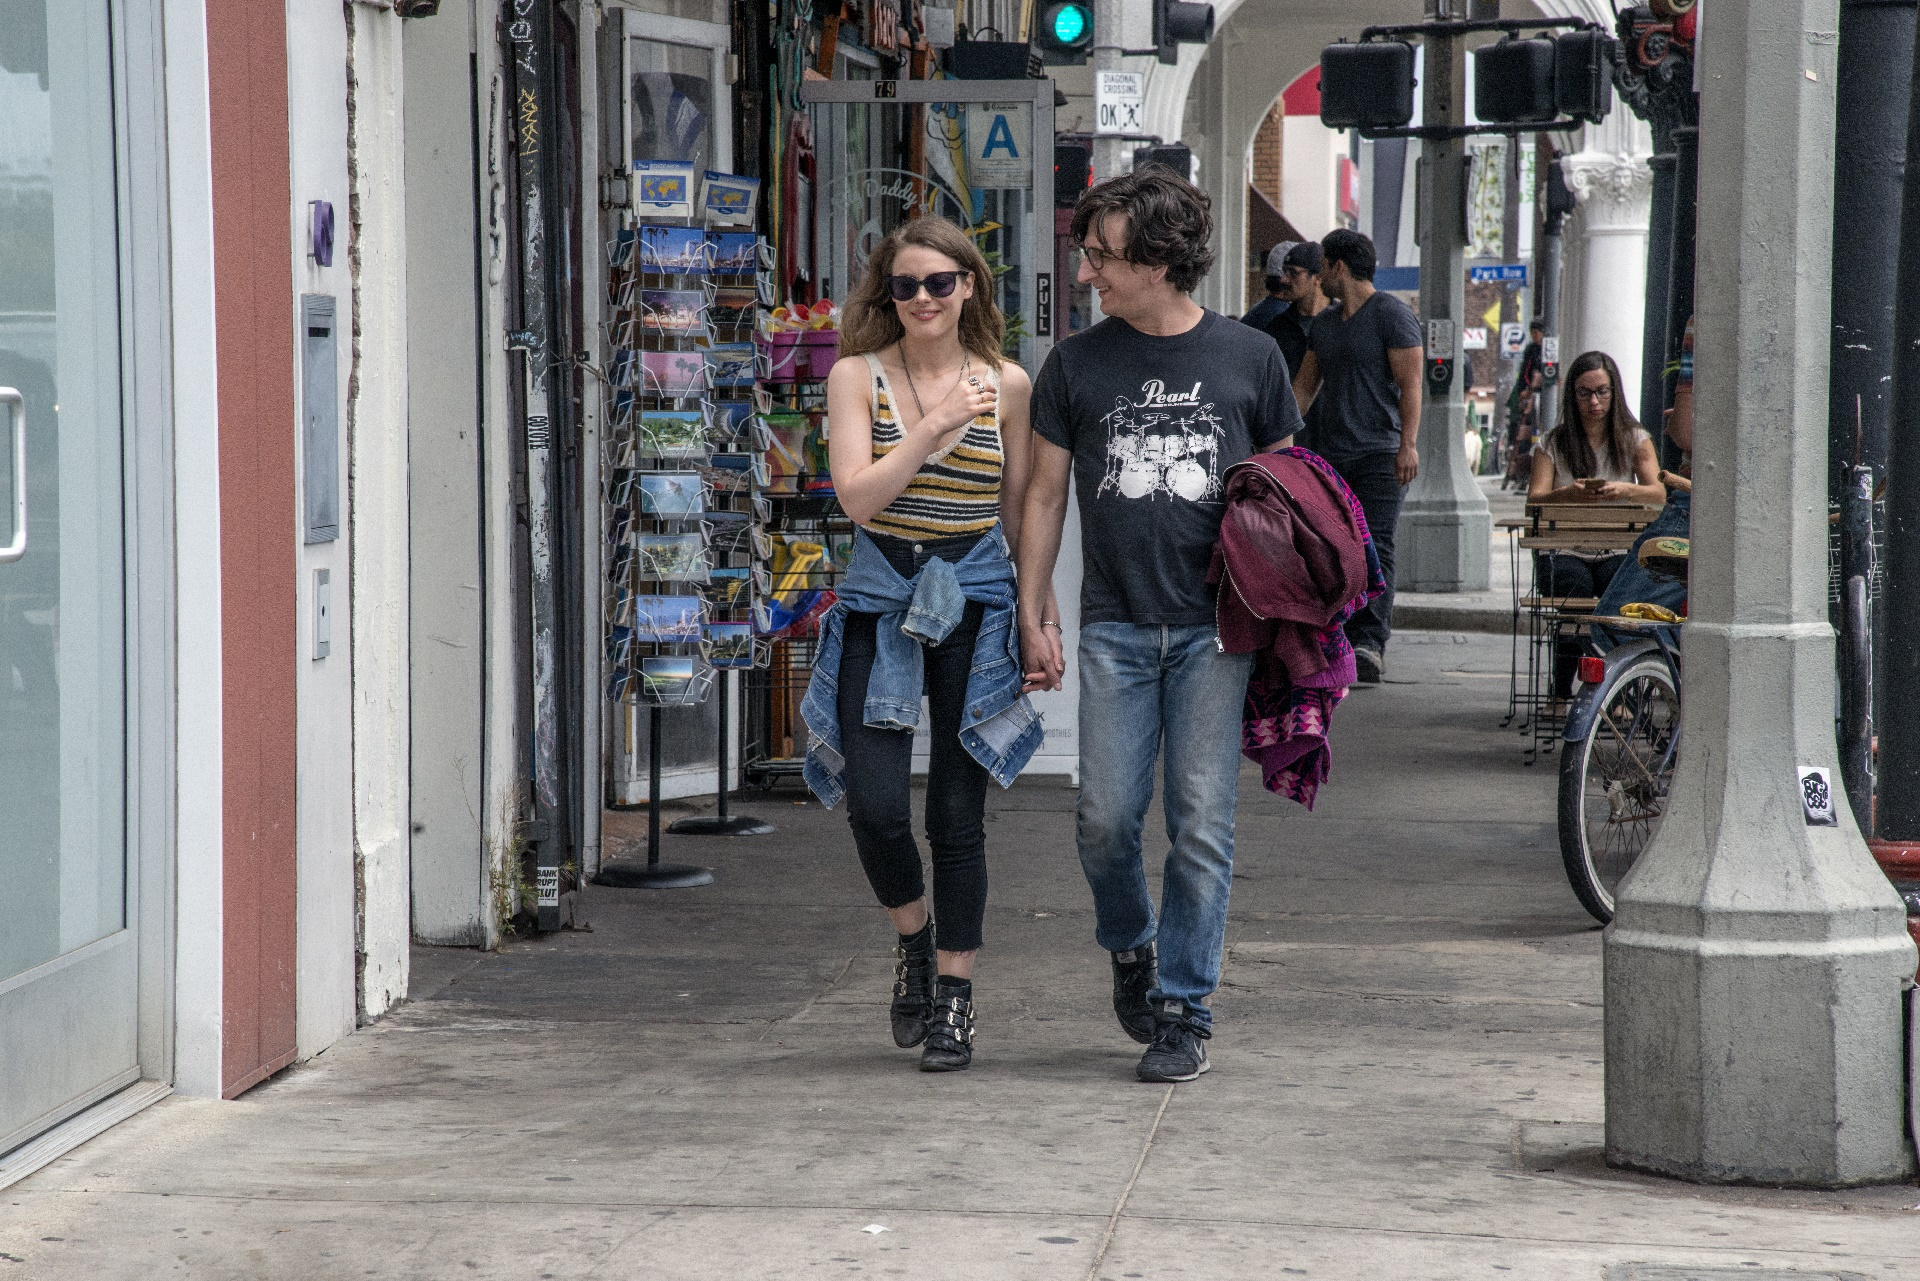 Love: un'immagine di Gillian Jacobs e Paul Rust